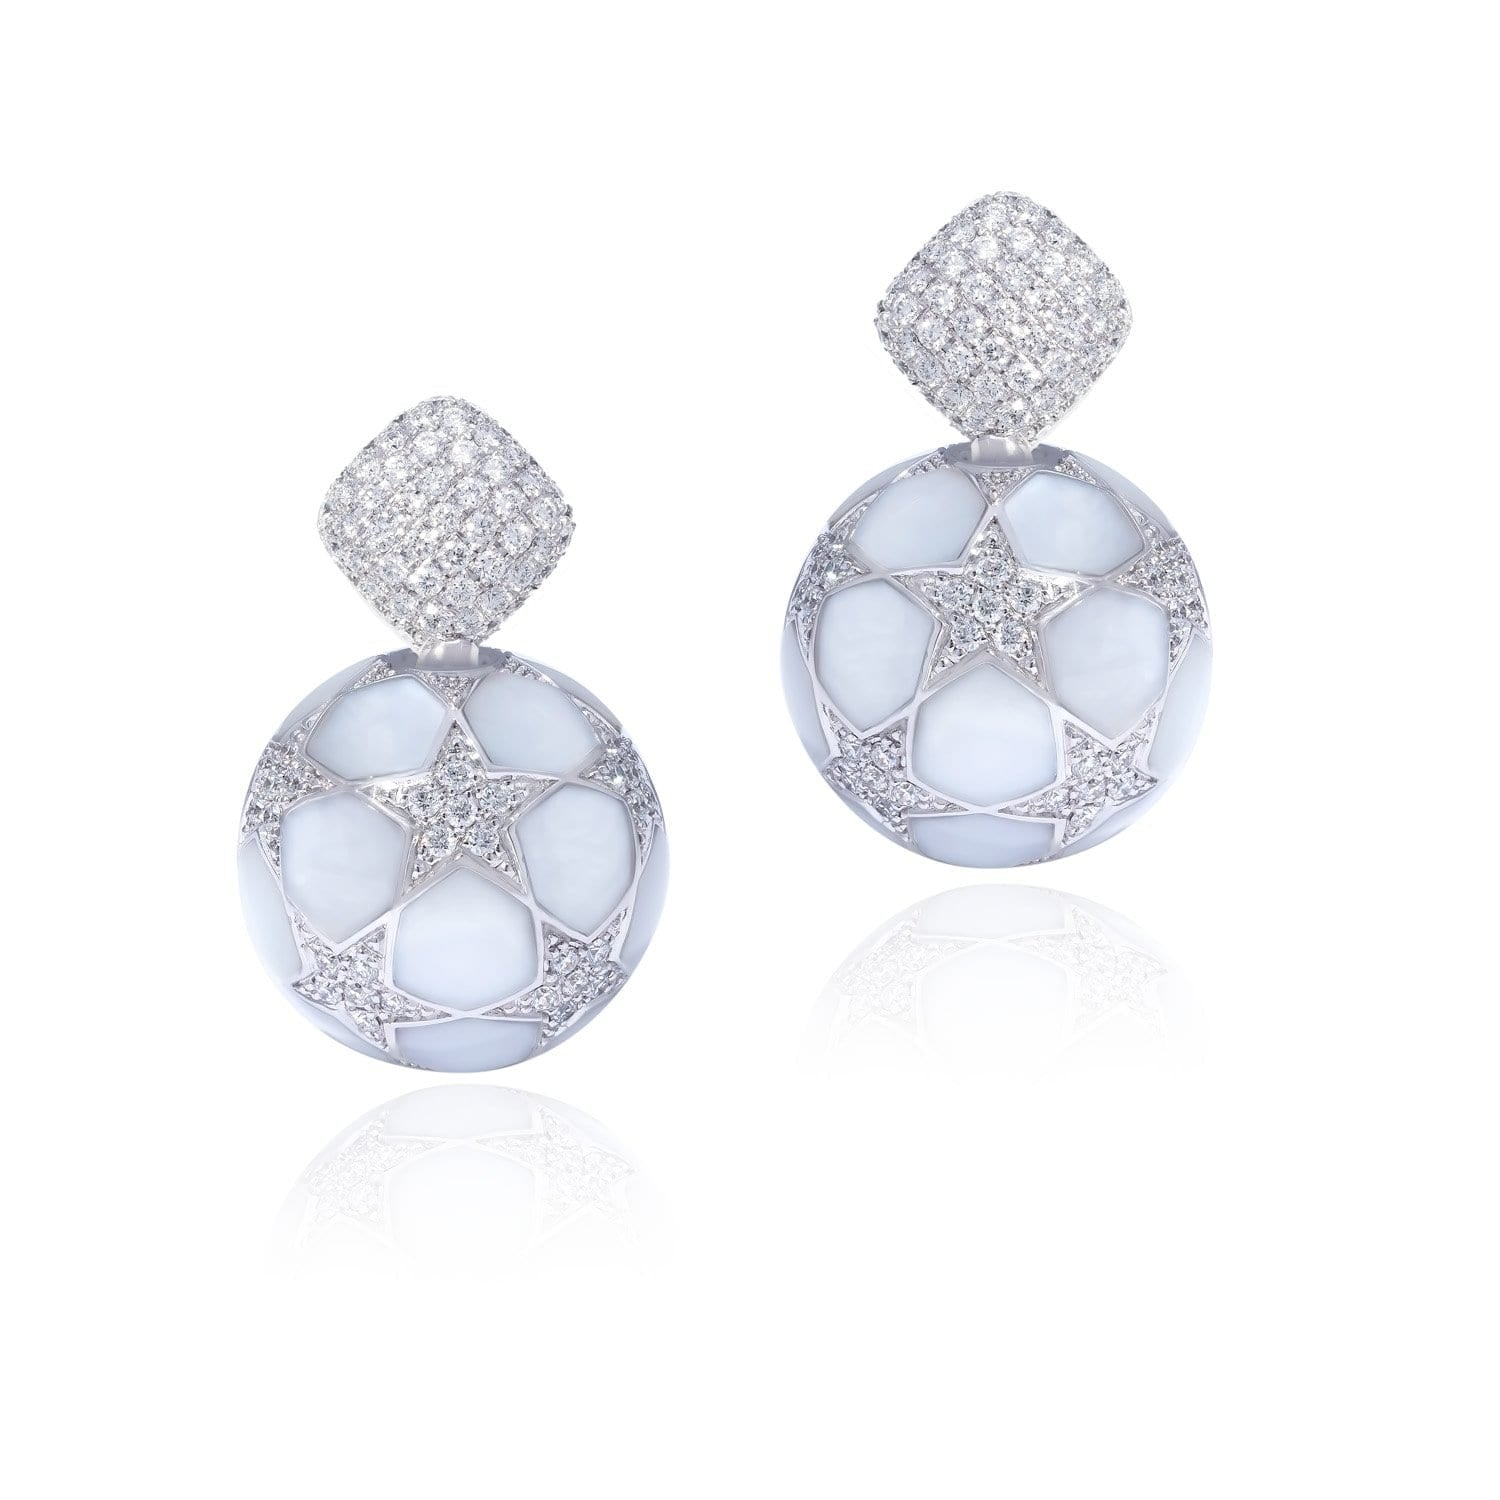 COMPOSA STARS Earrings - STENZHORN JEWELLERY